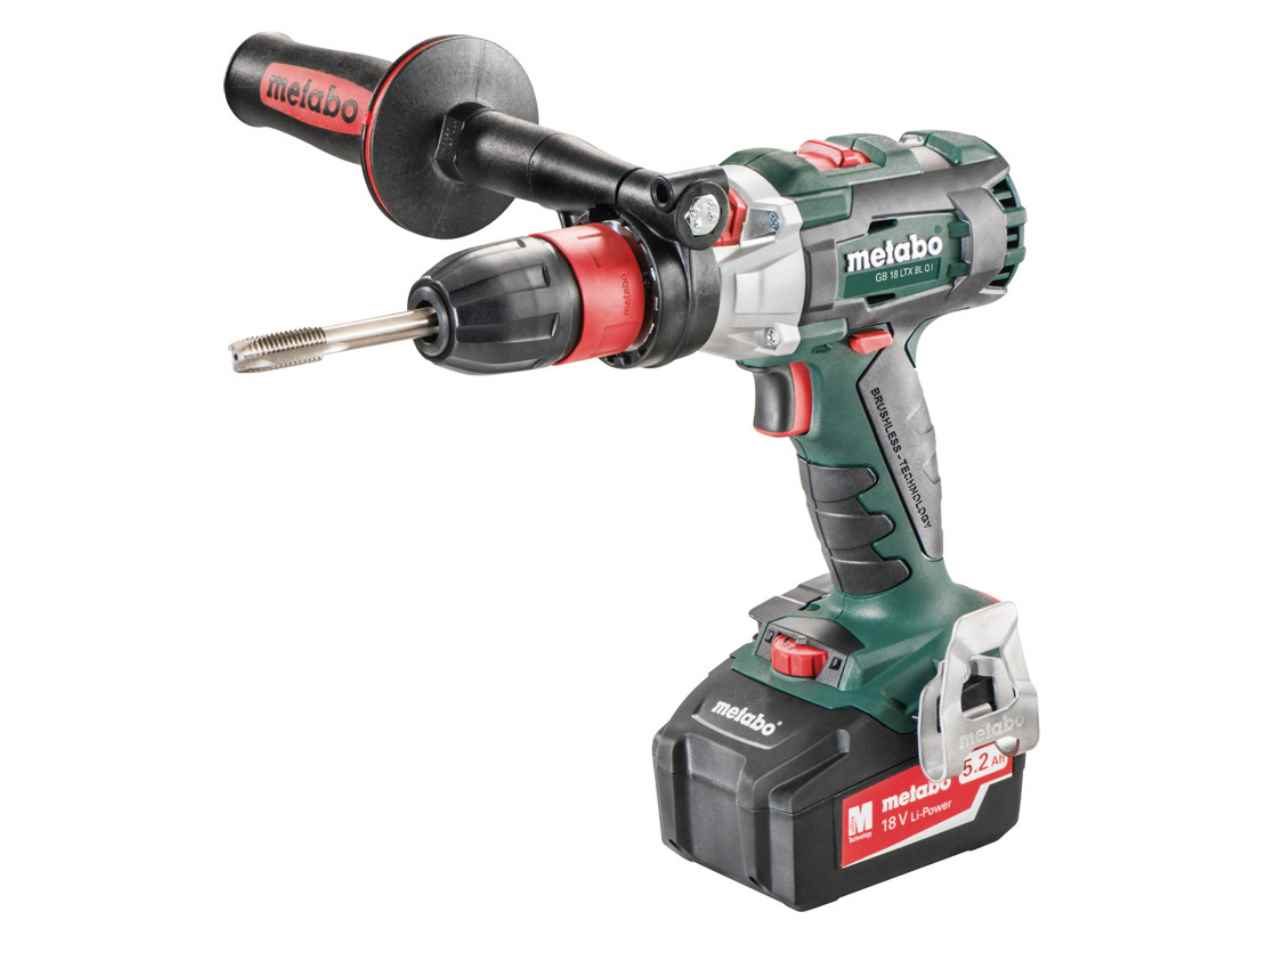 metabo 603827500 18v 2x5 2ah li ion cordless drill driver kit. Black Bedroom Furniture Sets. Home Design Ideas